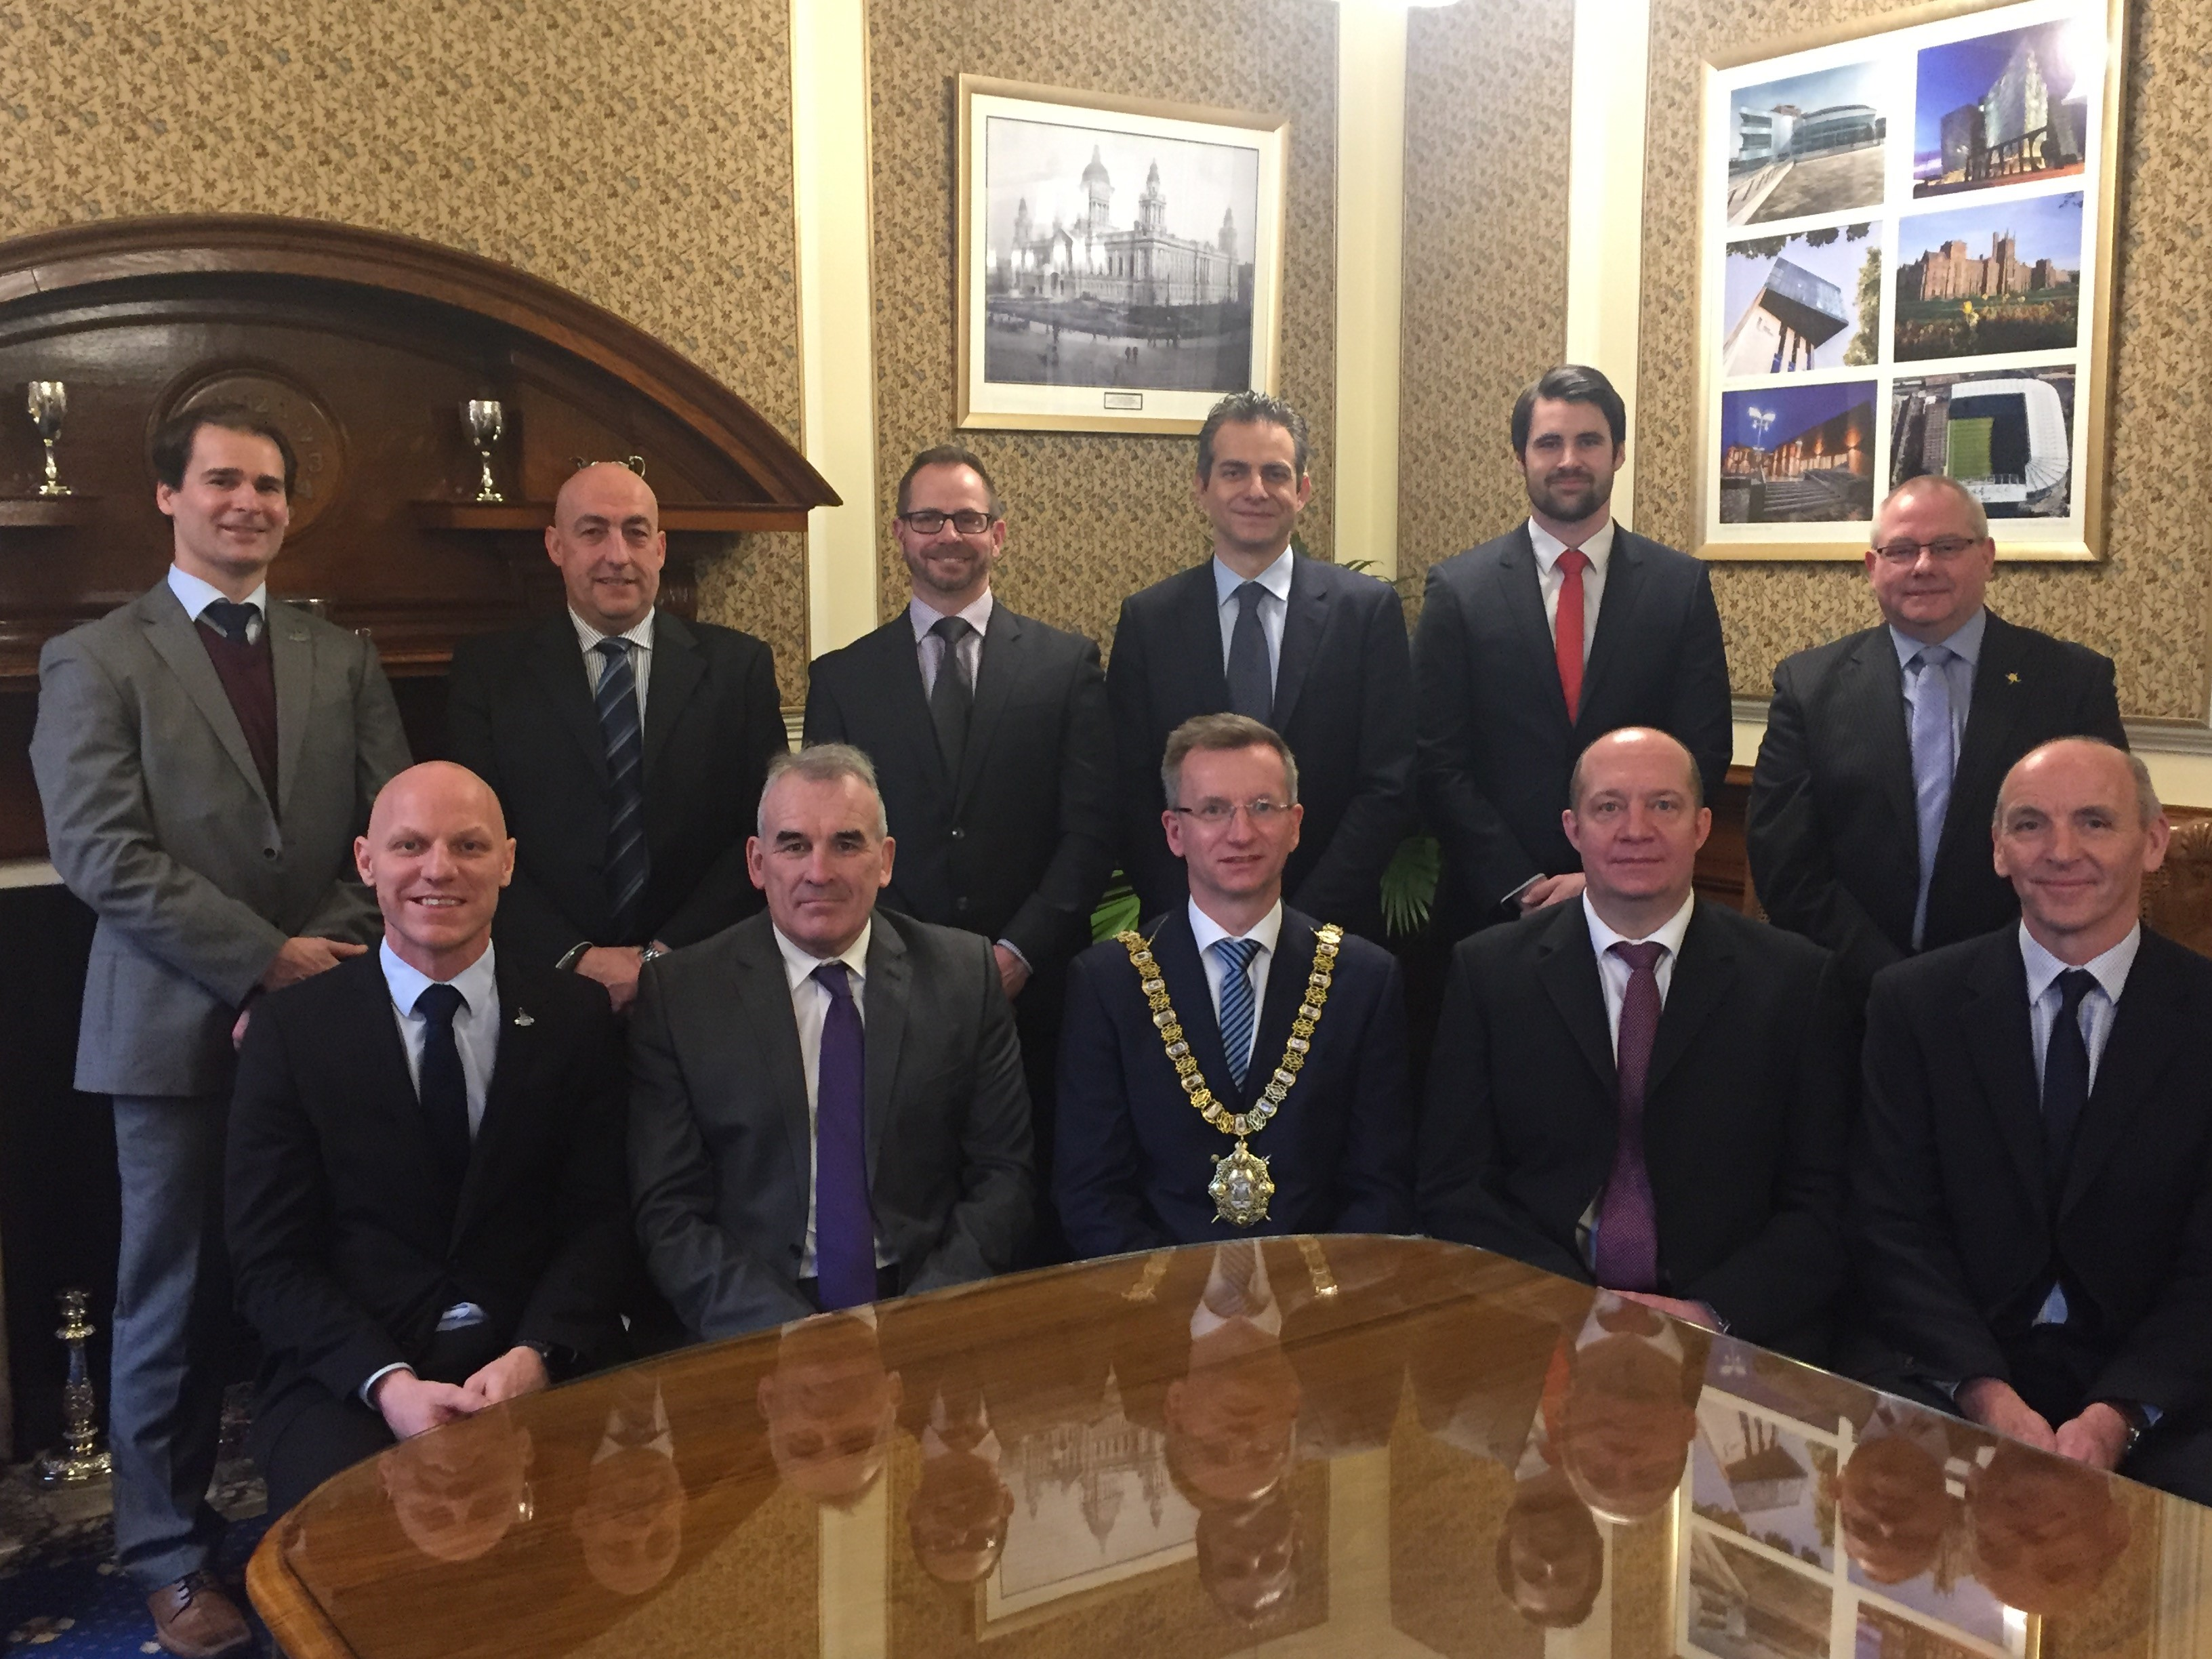 Belfast Lord Mayor Welcomes IIHF Ice Hockey World Championship Officials